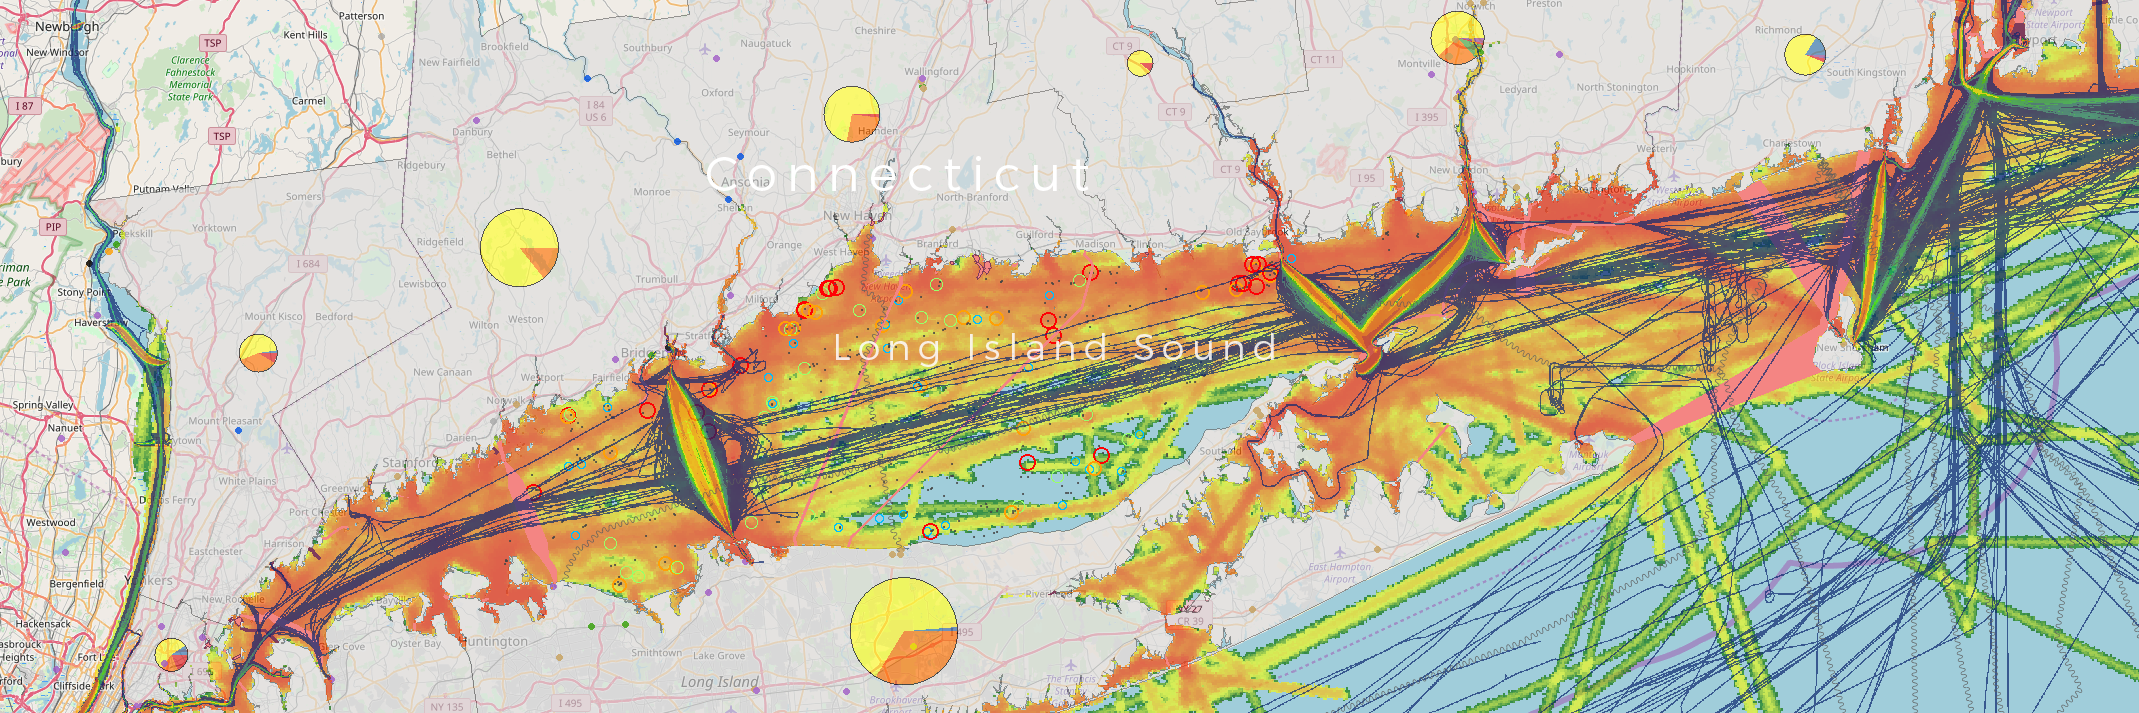 Screenshot of Northeast Ocean Data interactive map of Long Island Sound with a selection of data on ocean uses and marine life.